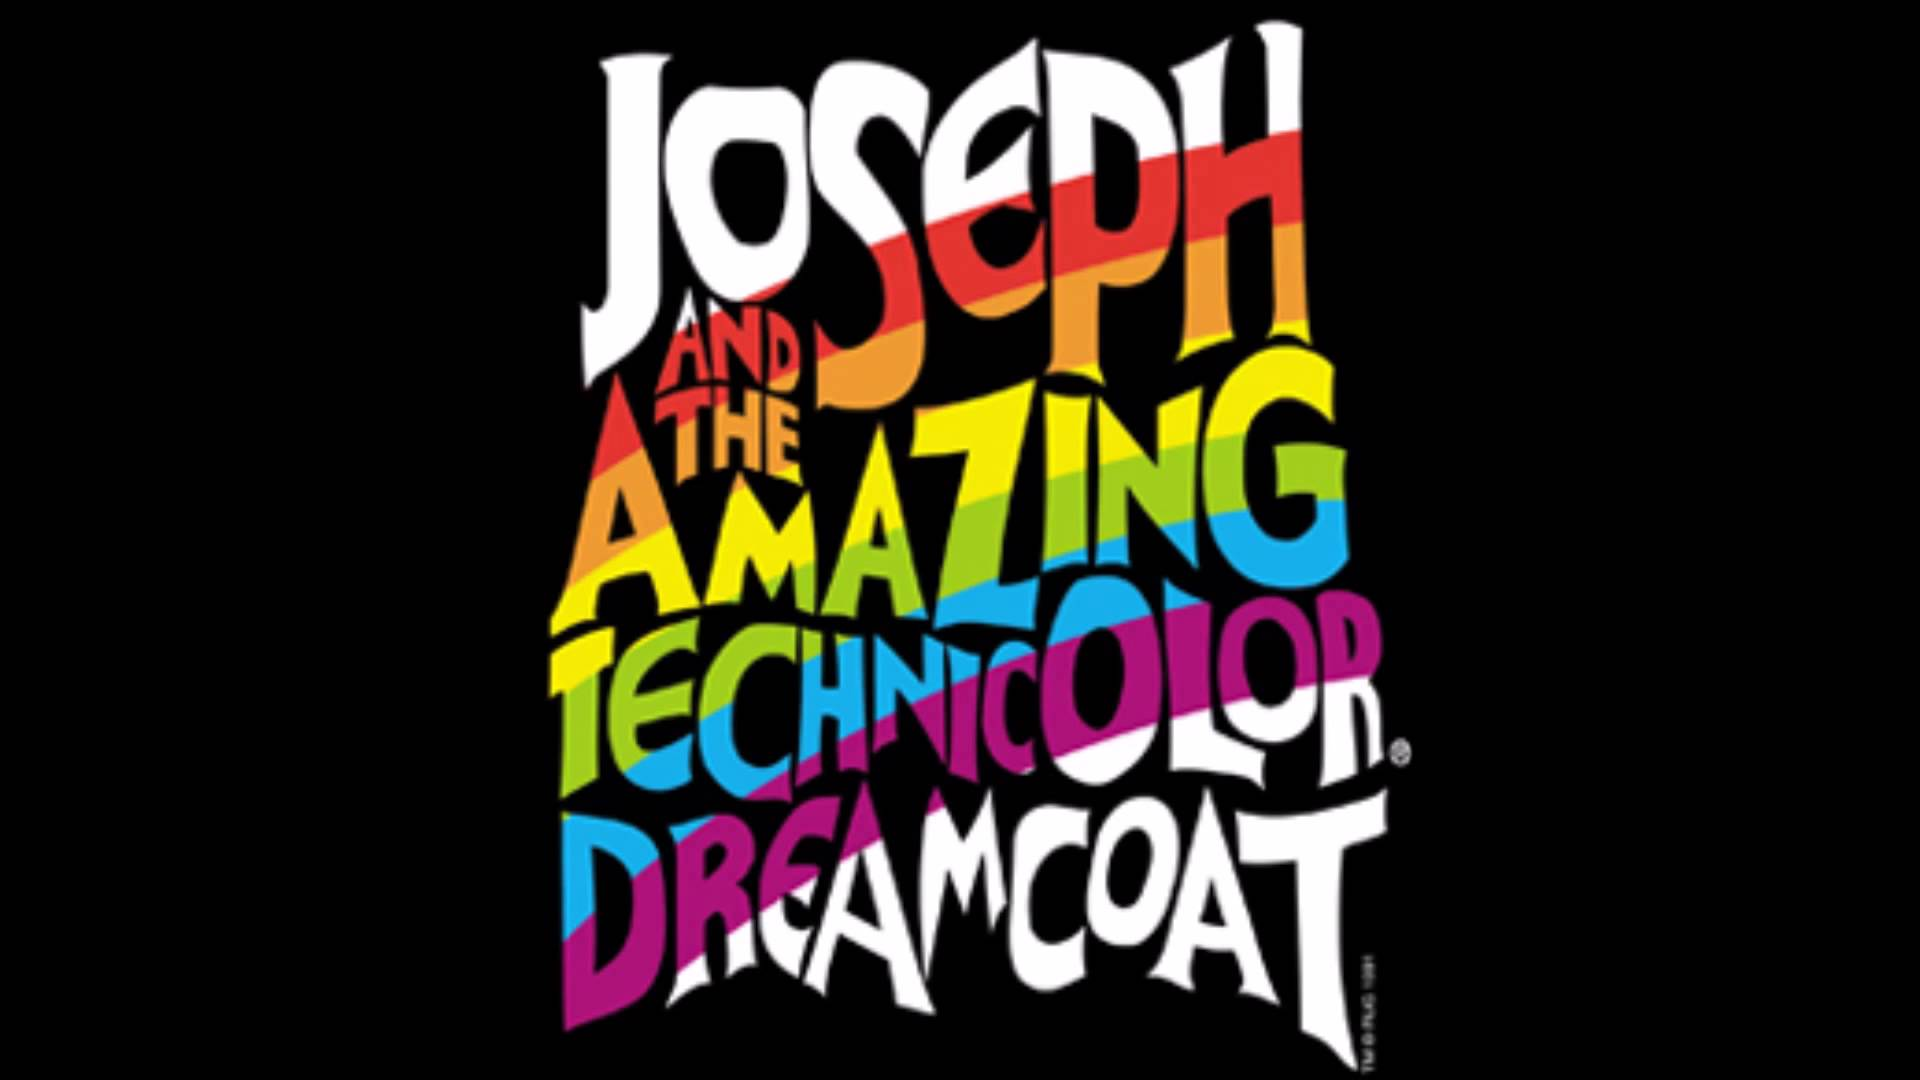 Joseph Und Joseph Joseph And The Amazing Technicolor Dreamcoat